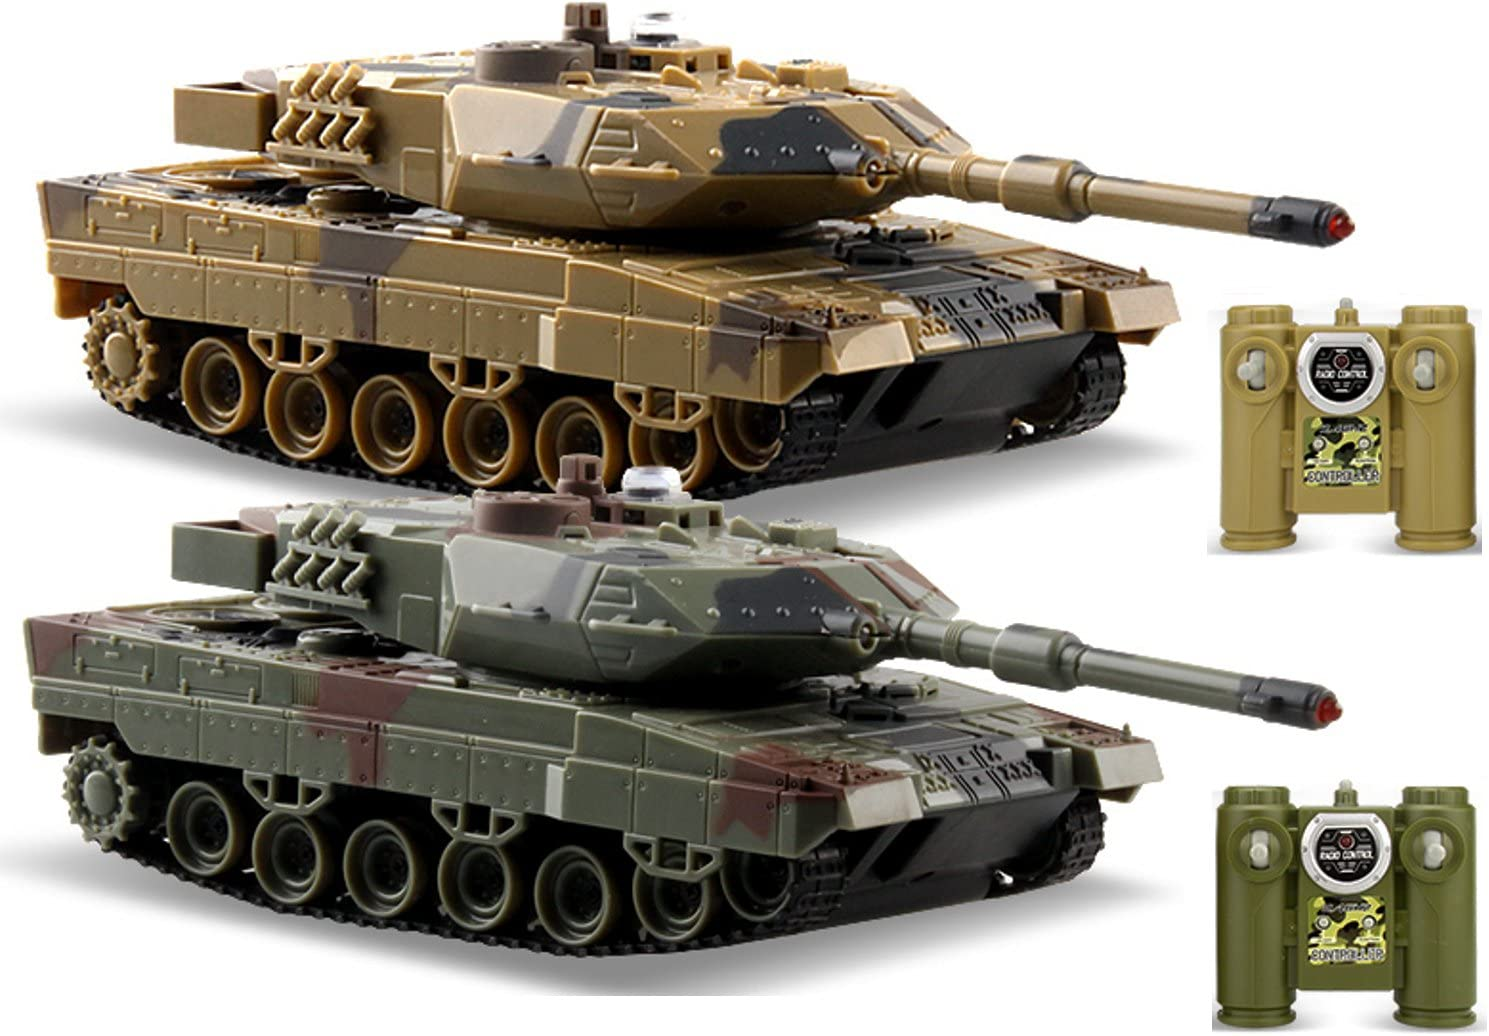 Top 10 Best Remote Control Tanks Battle (2020 Reviews & Buying Guide) 4